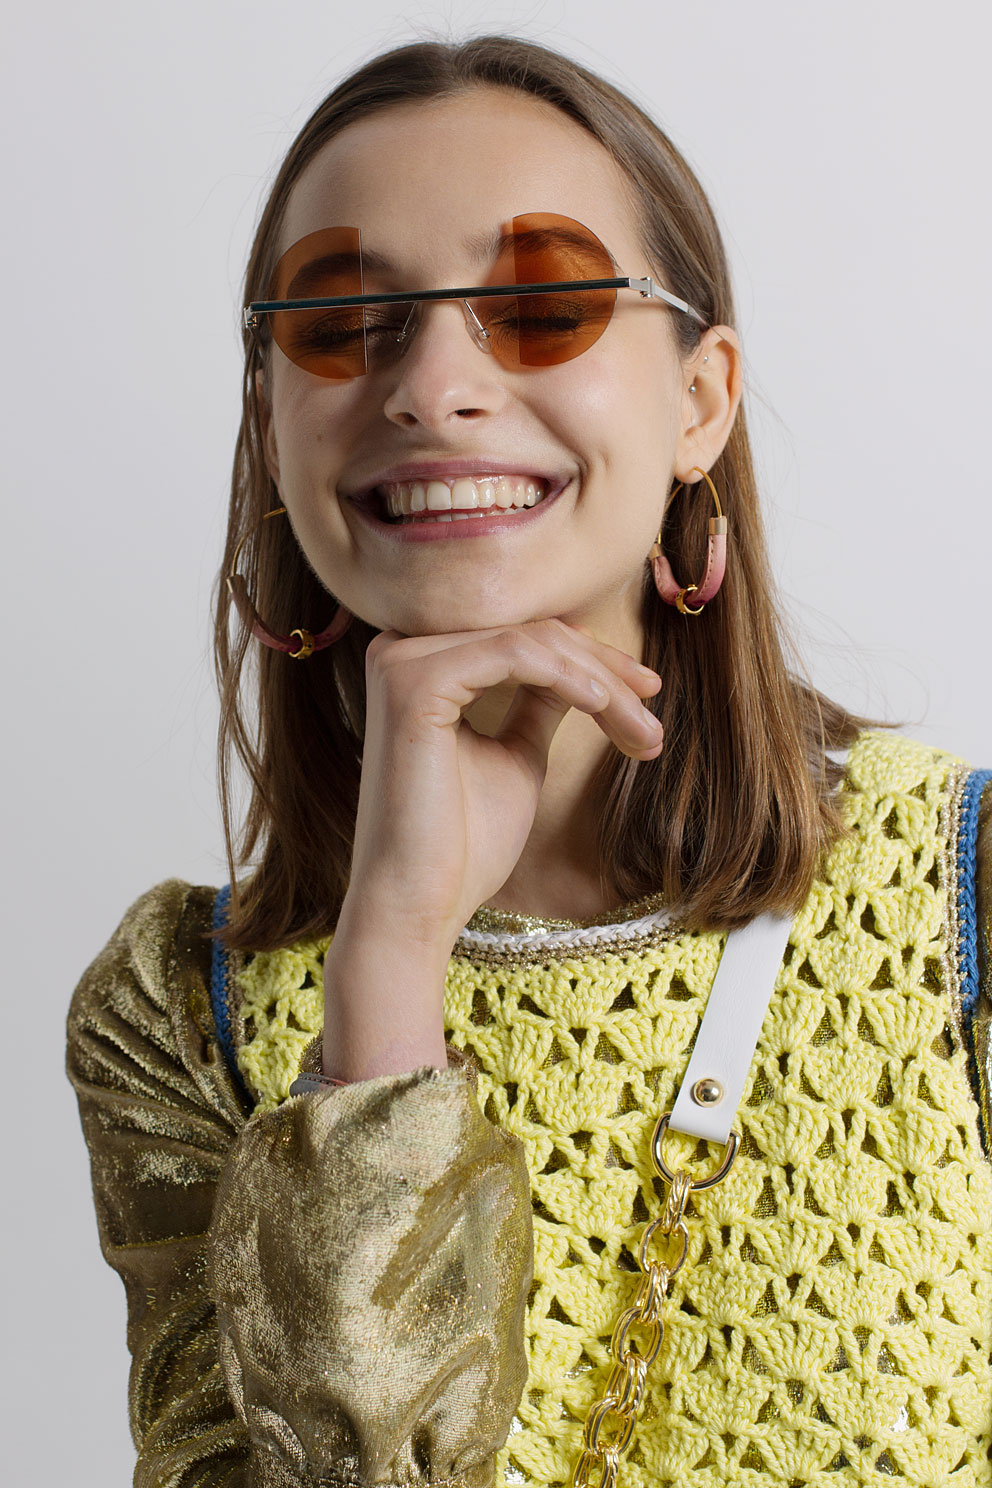 Gold long sleeve top by Ammerman Schlosberg, yellow knitwear crop by Katie Jones, earrings by Jacey Withers, glasses by Percy Lau, bag by Death in Paris